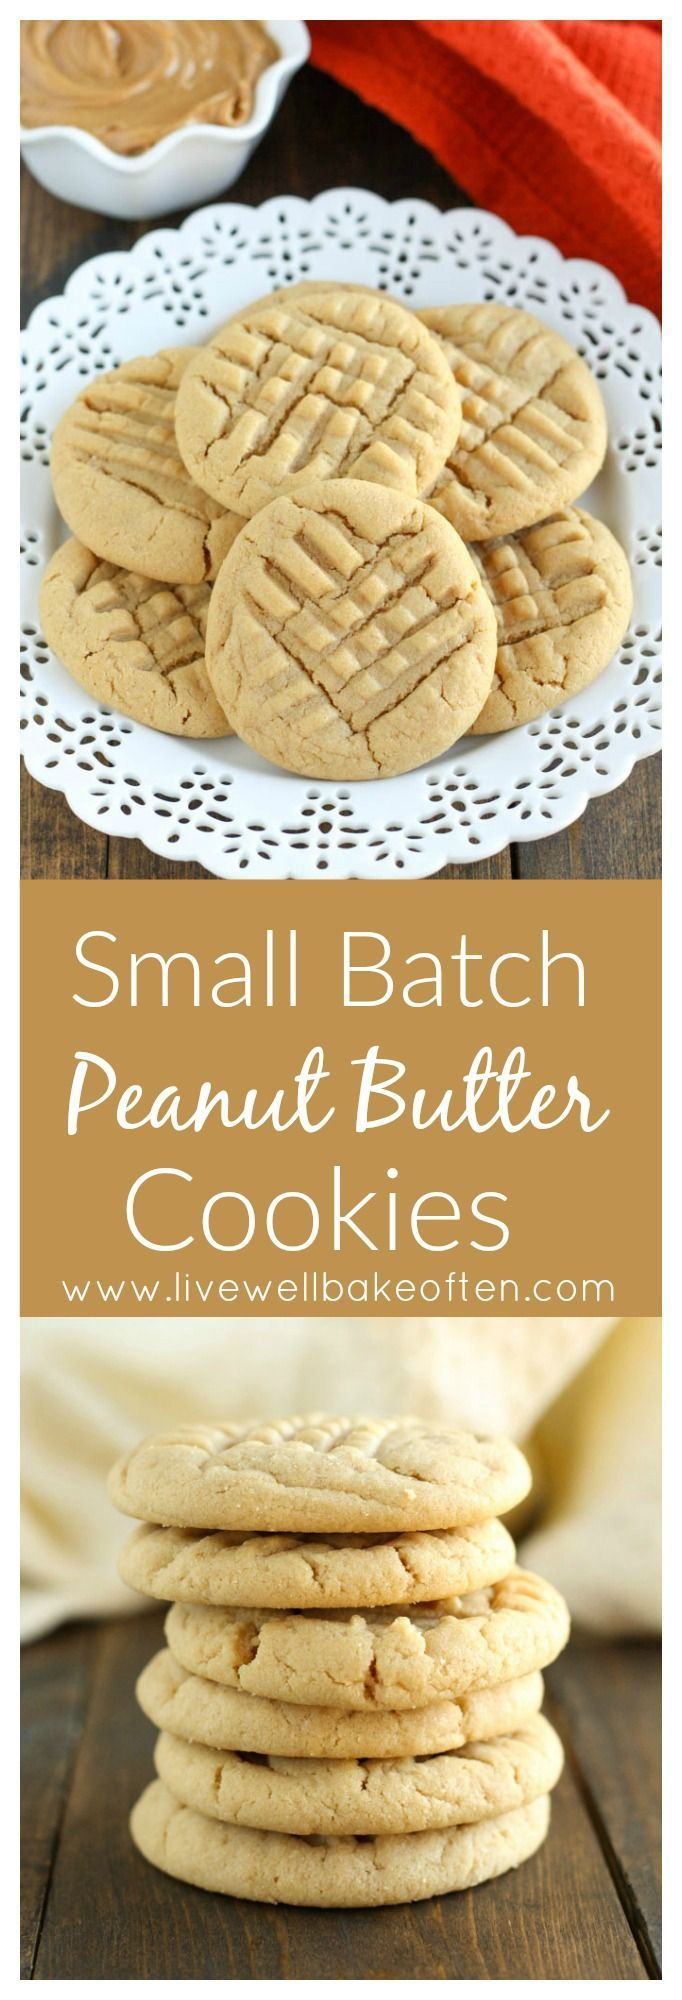 This easy Small Batch Peanut Butter Cookie recipe requires just one bowl! This recipe only makes 6-7 cookies and they're done in just 30 minutes!